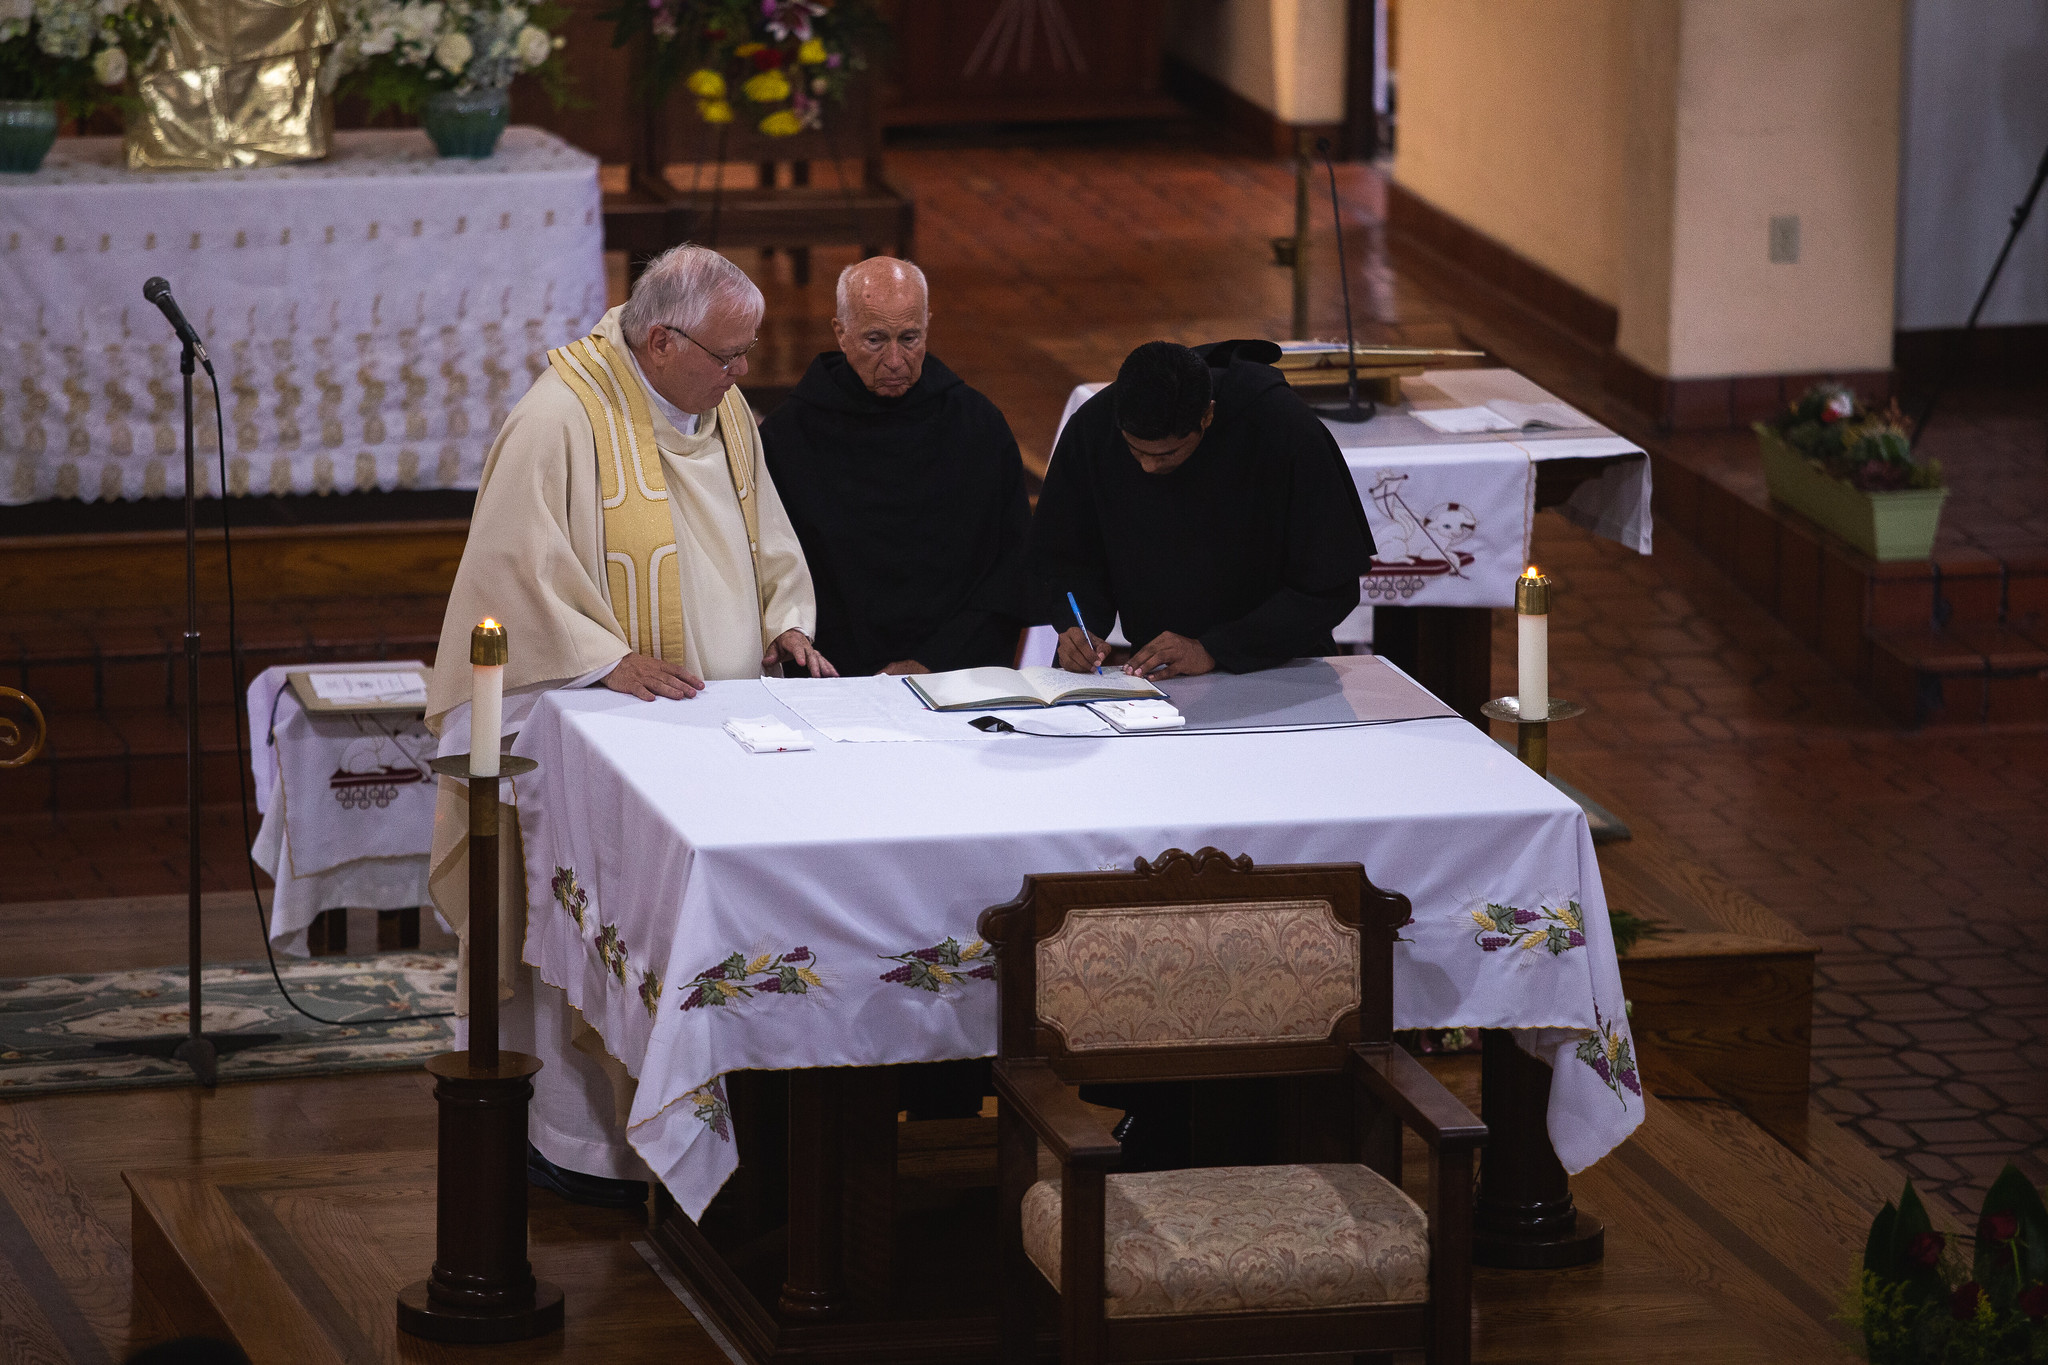 Signing of the Profession Book